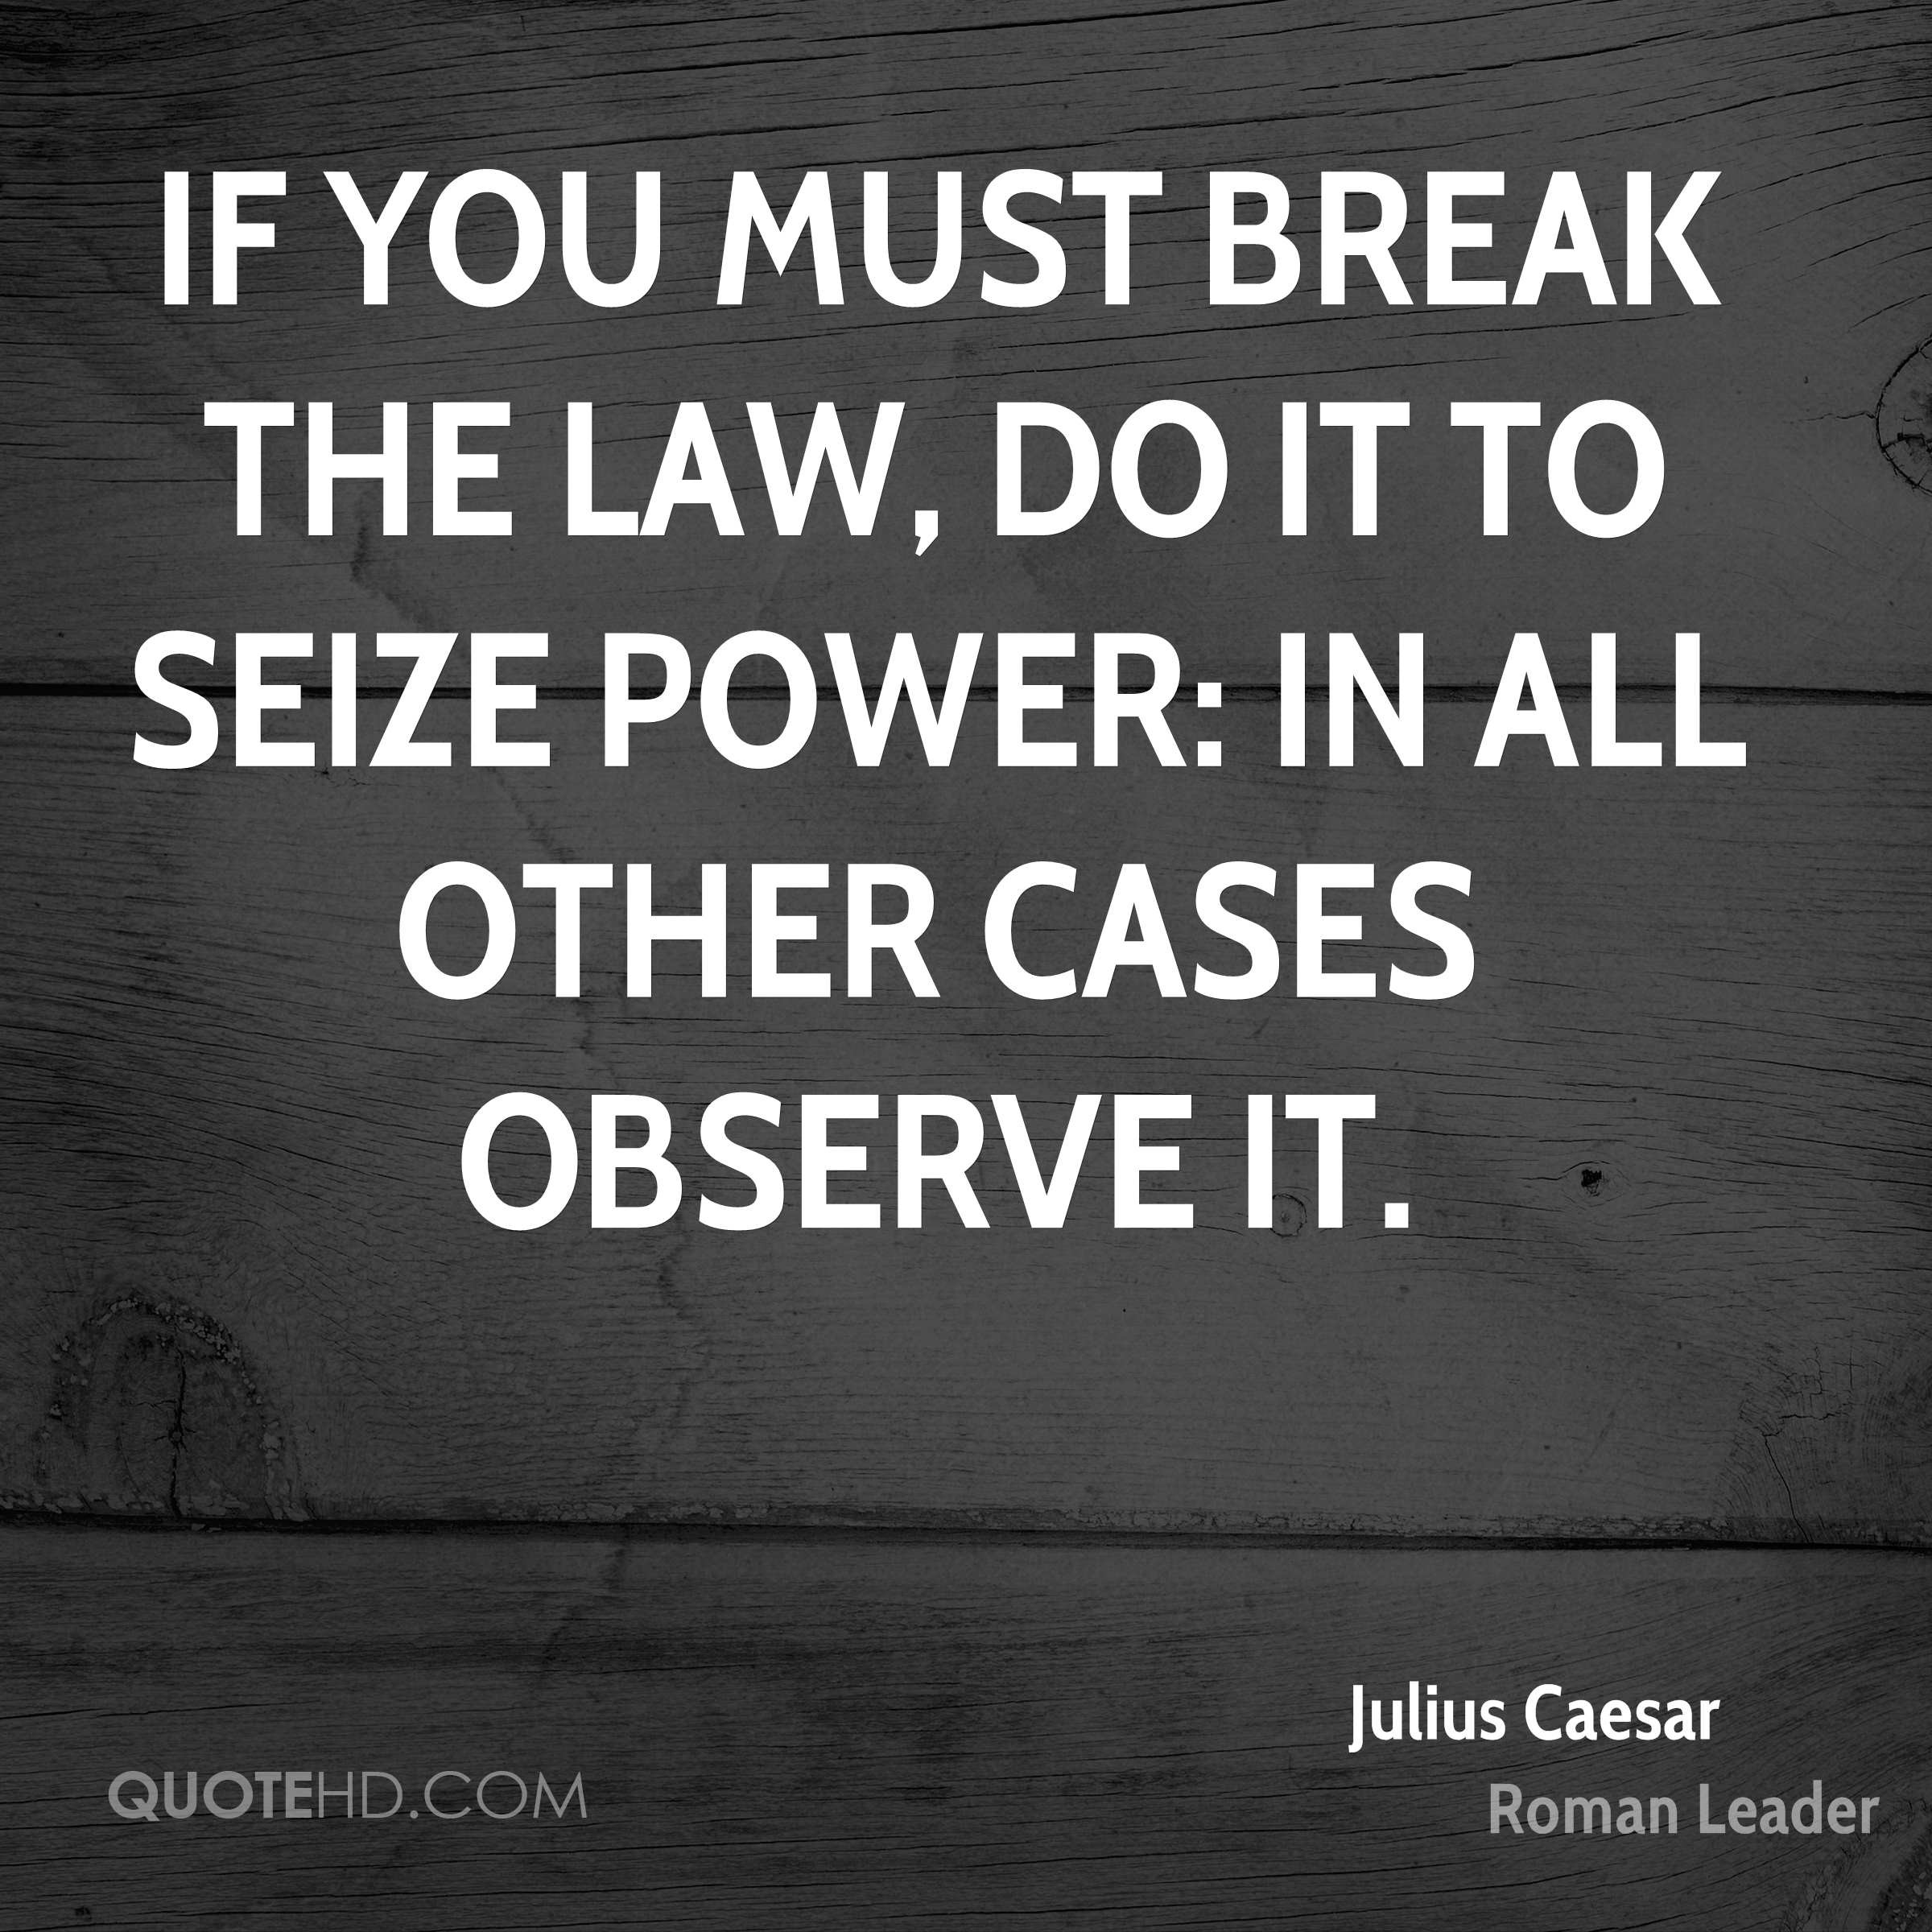 Julius Caesar Leadership Quotes  Julius Caesar Power Quotes